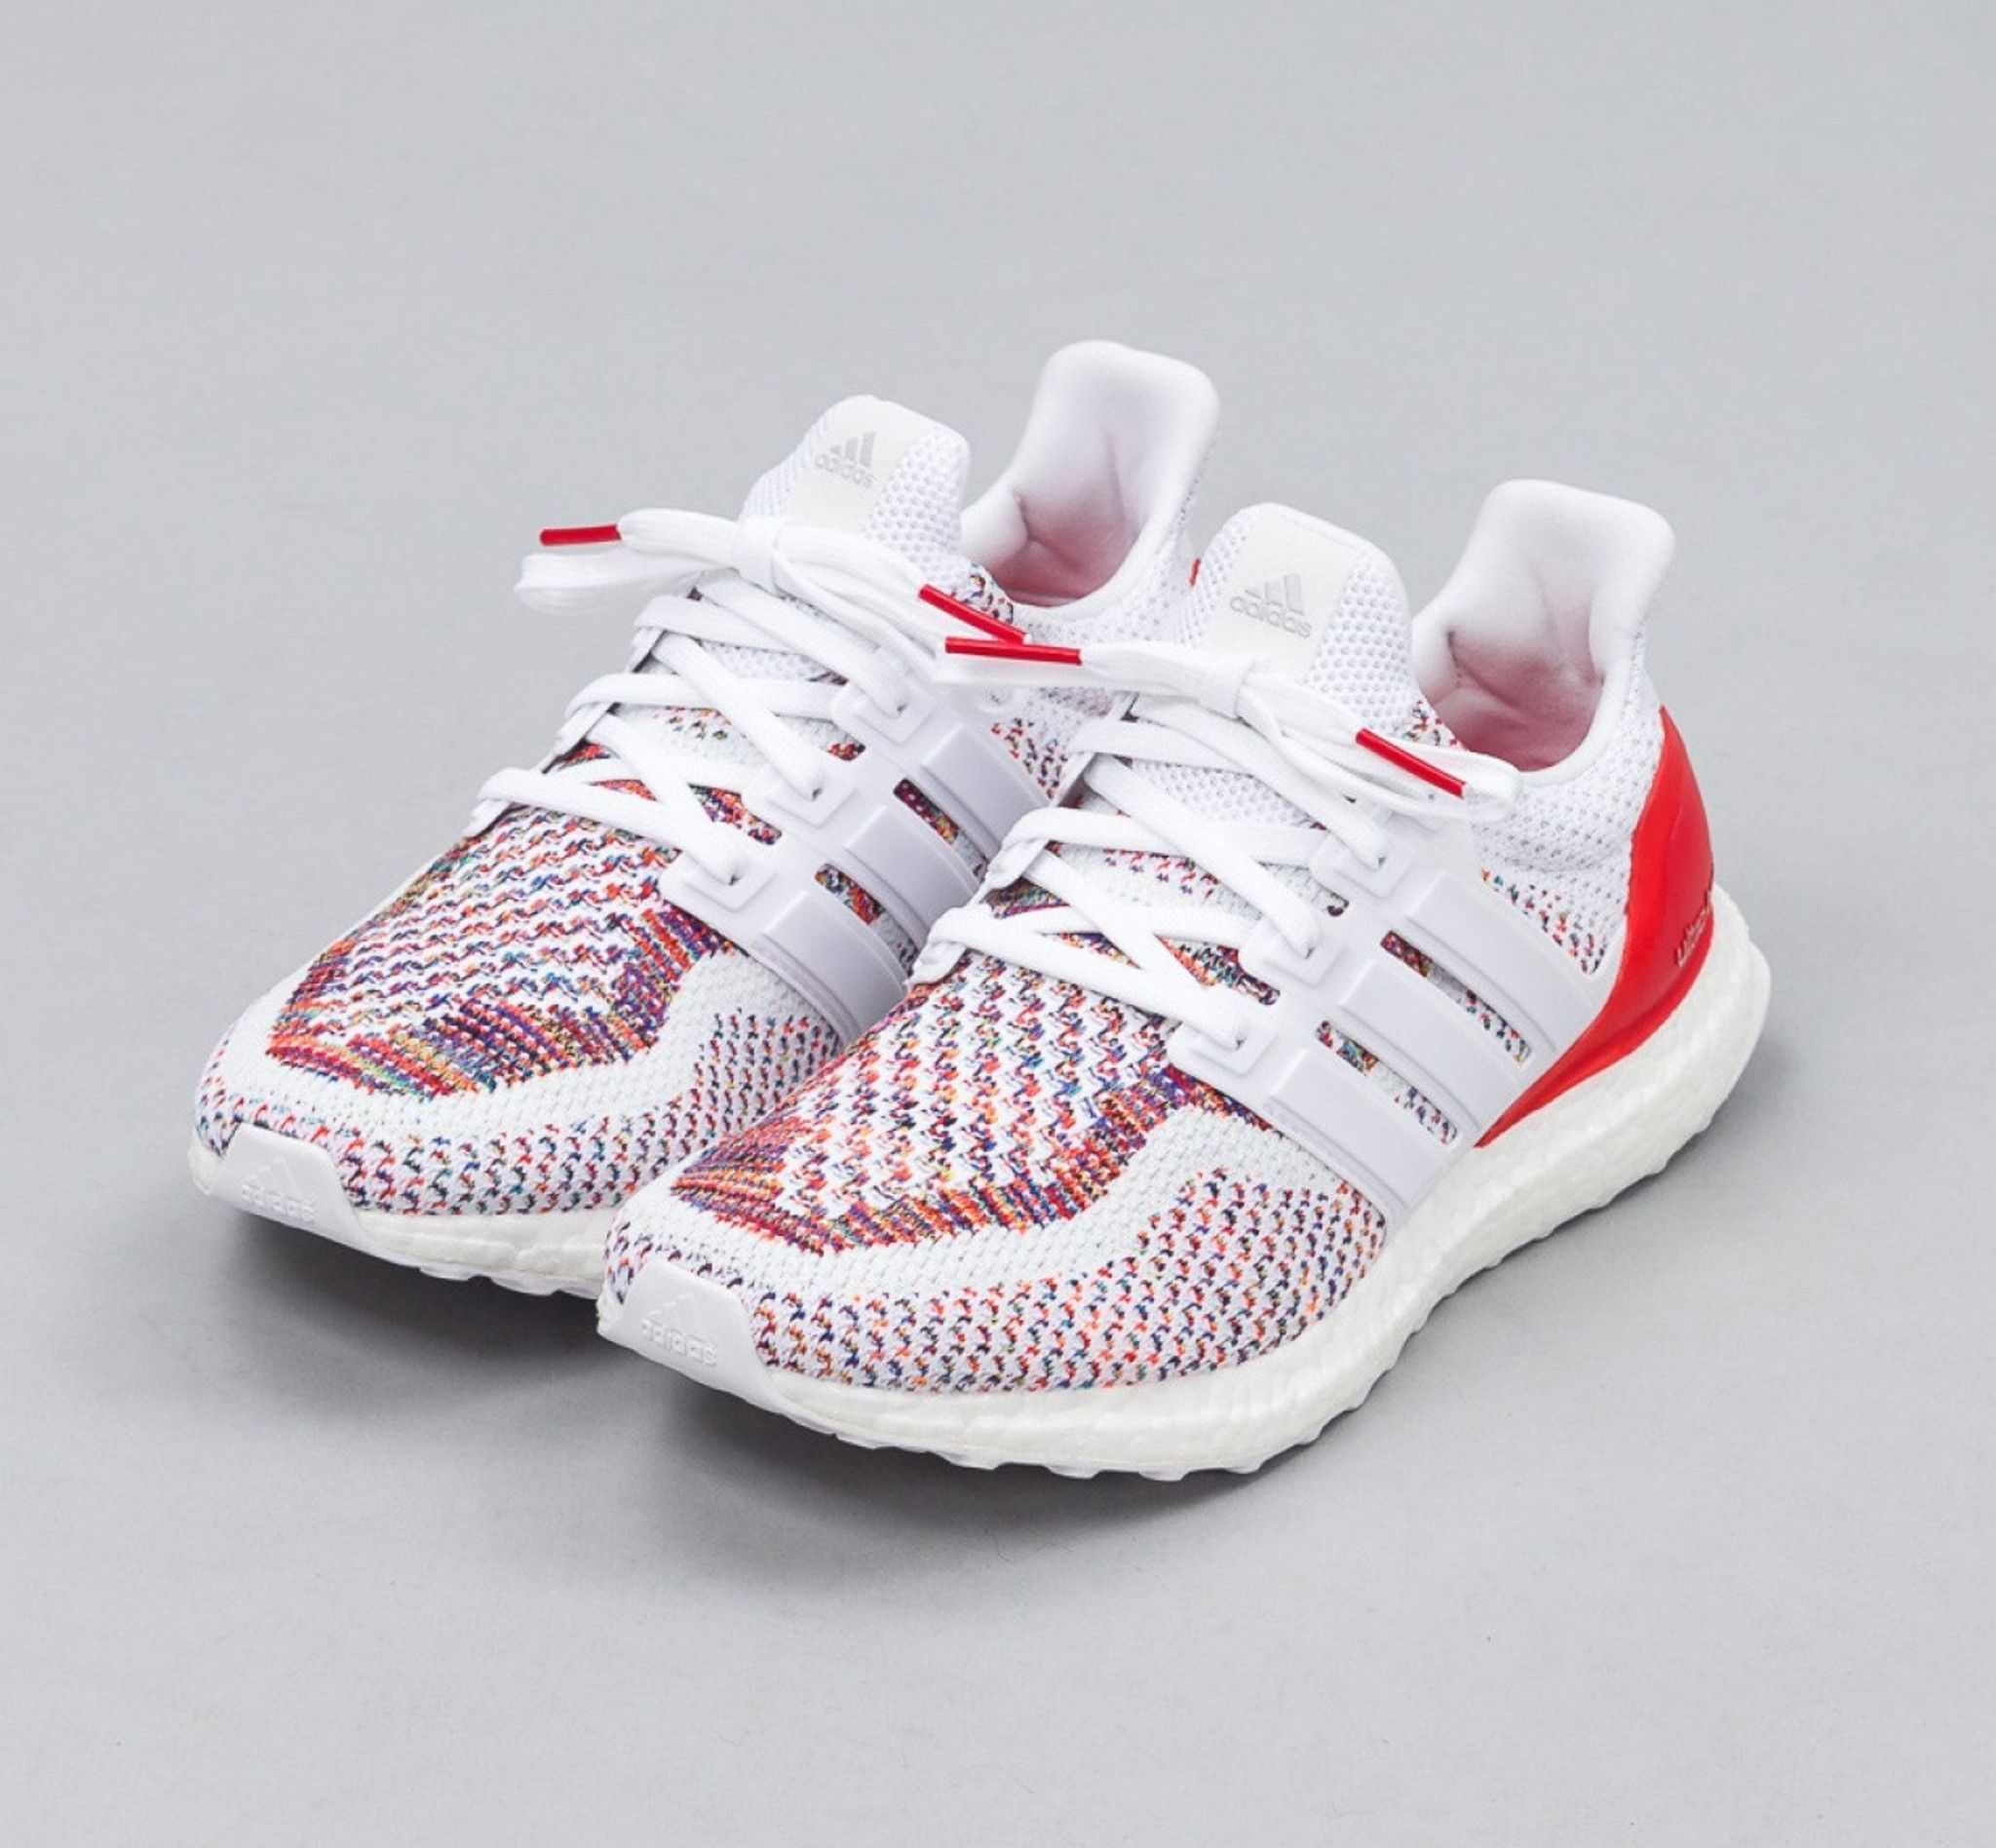 1e8e1f1b63ed63 Adidas Ultra Boost M Multi Color 2.0 Size Red White Multicolor BB3911  Ultraboost